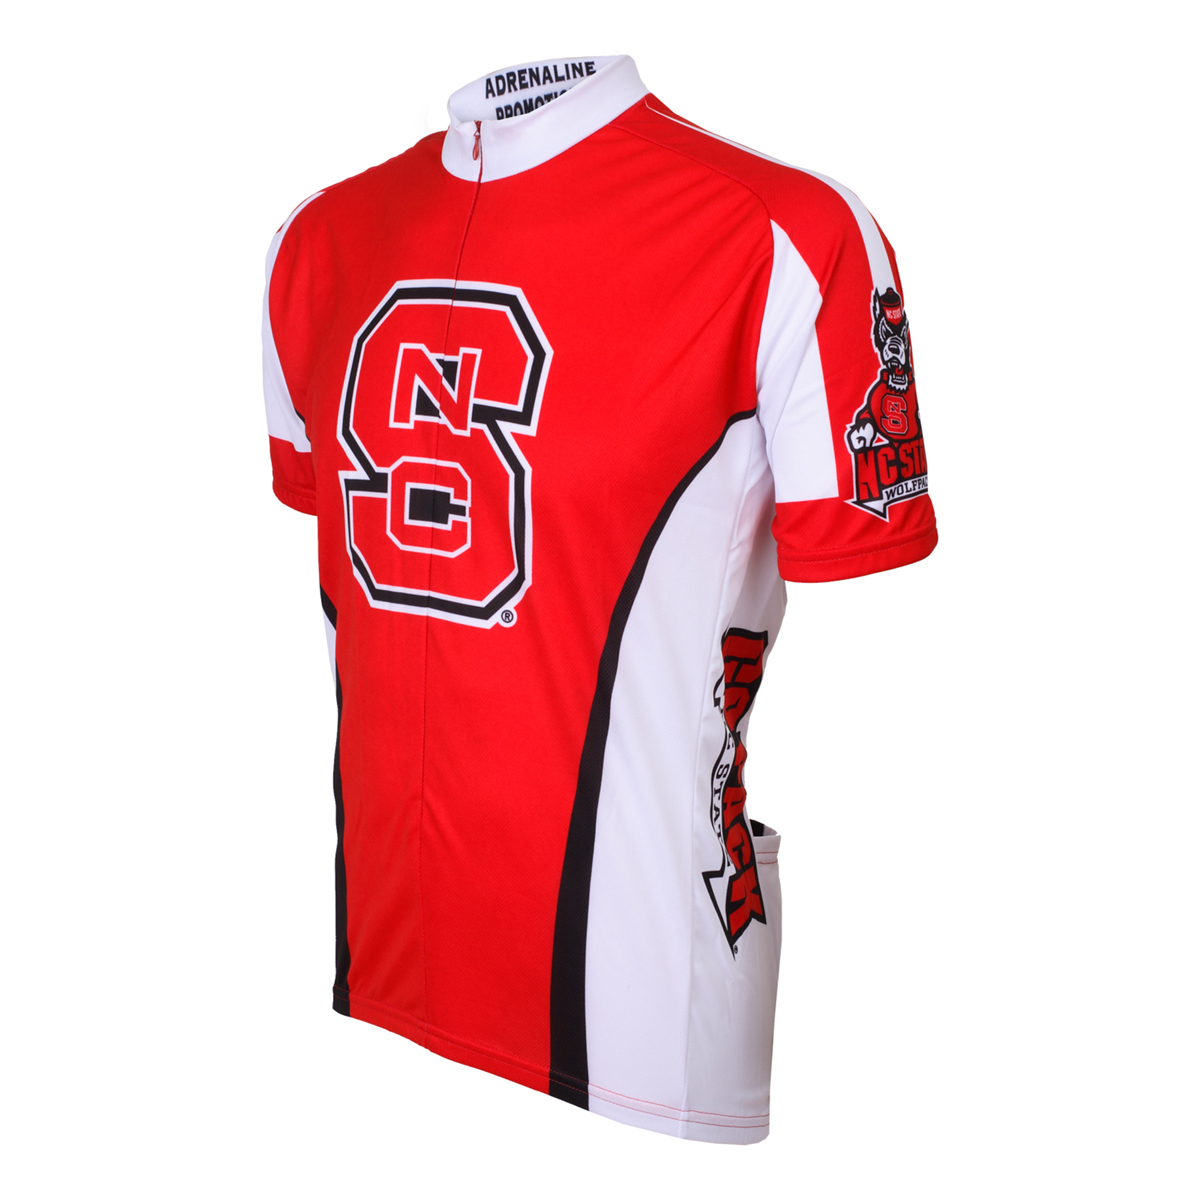 Image of Adrenaline Promotions North Carolina State Wolfpack Cycling Jersey